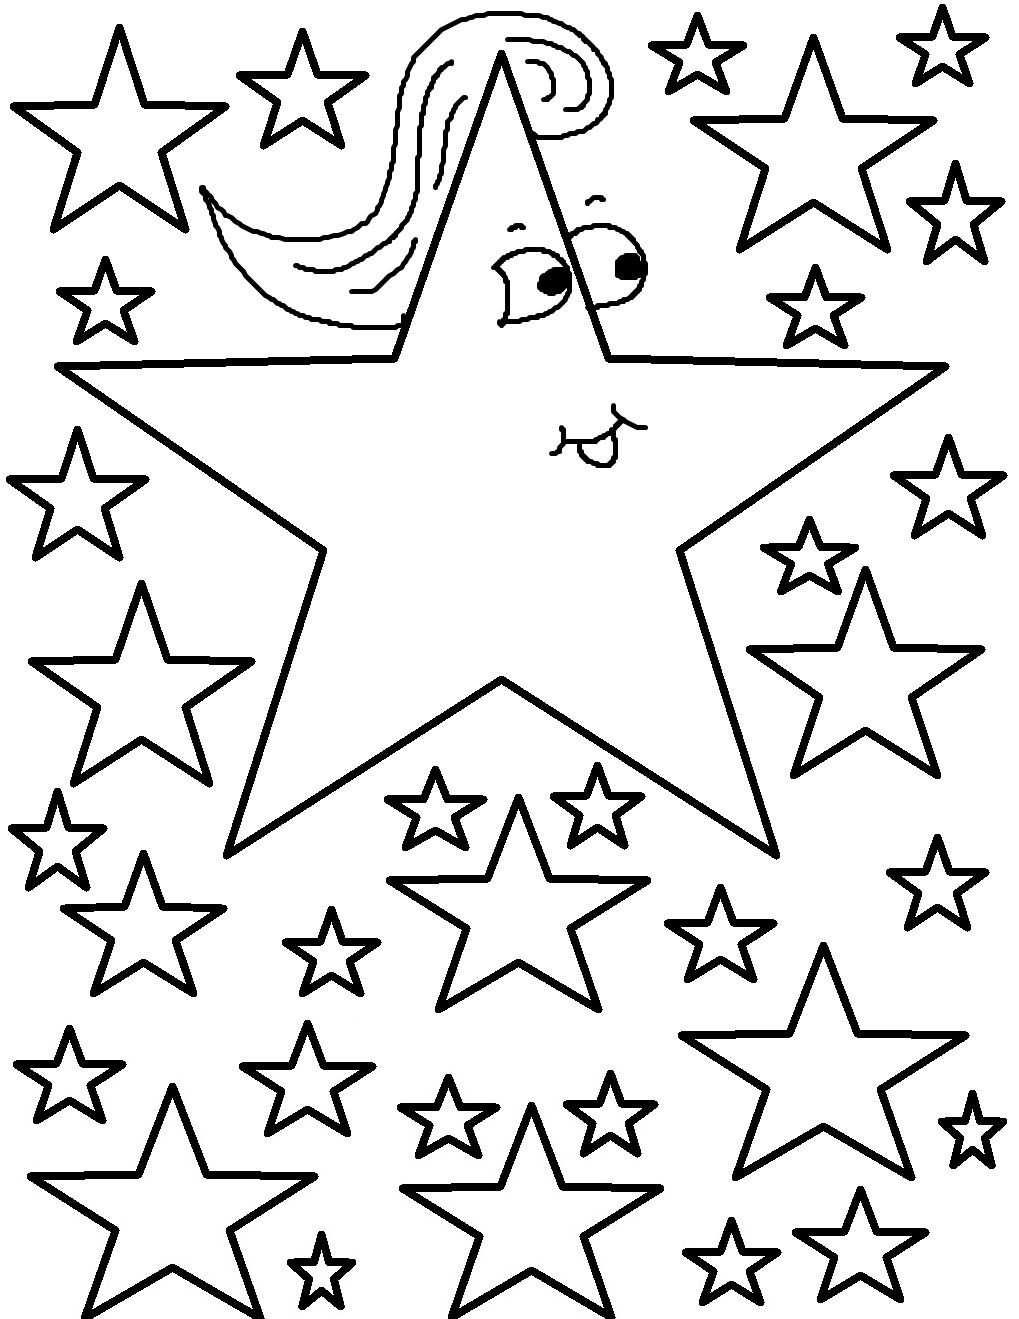 star picture to color 2 stars coloring page twisty noodle picture color star to